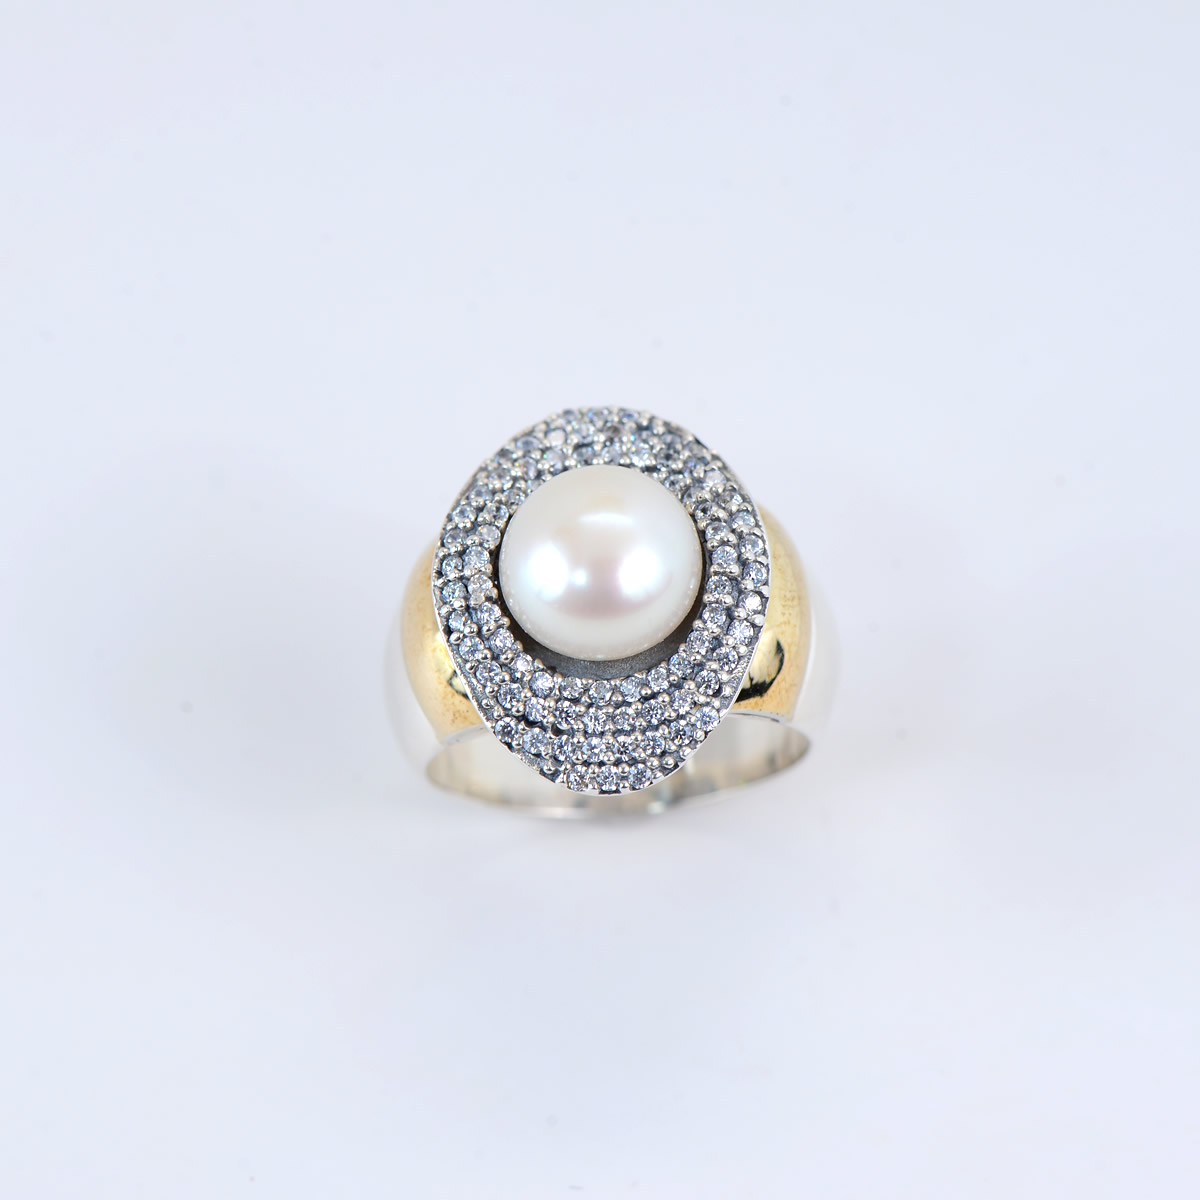 Elegant sterling Silver 9.25 and goldtone Plating ring with fresh water pearl